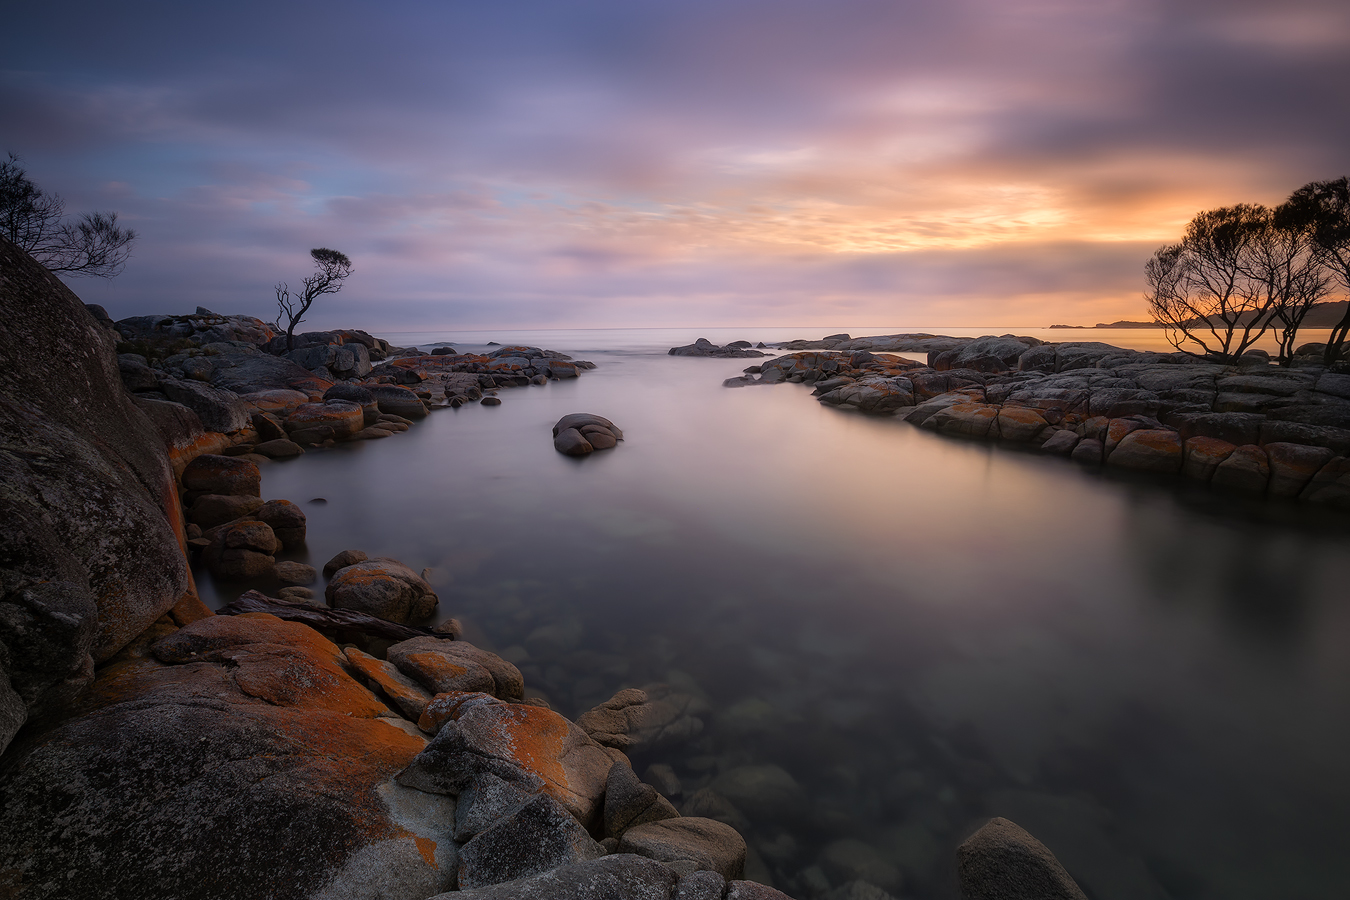 Tasmania Landscape Photography Tour - Remote Wonders Binalong Bay | Holiday with We Are Raw Photography Tours